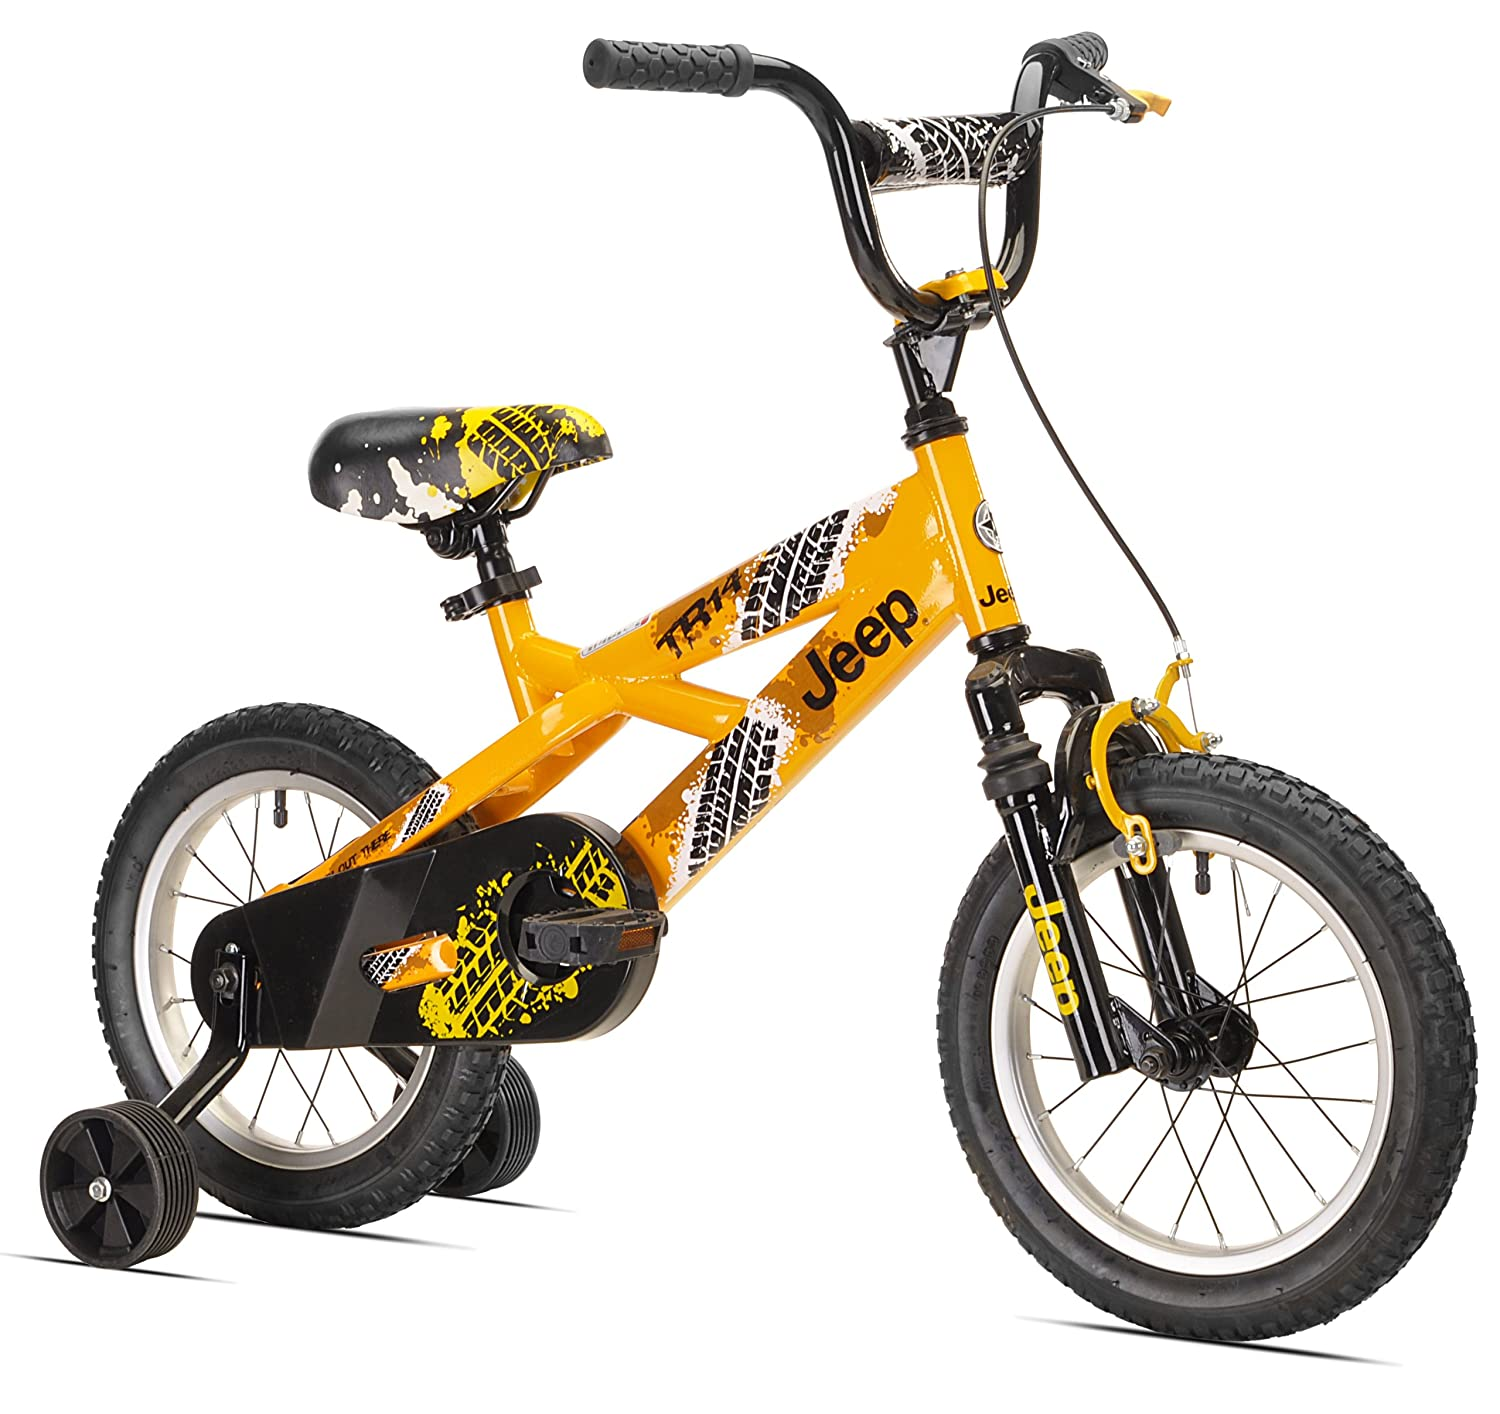 Bikes Kids Jeep Boy s Bike Inch